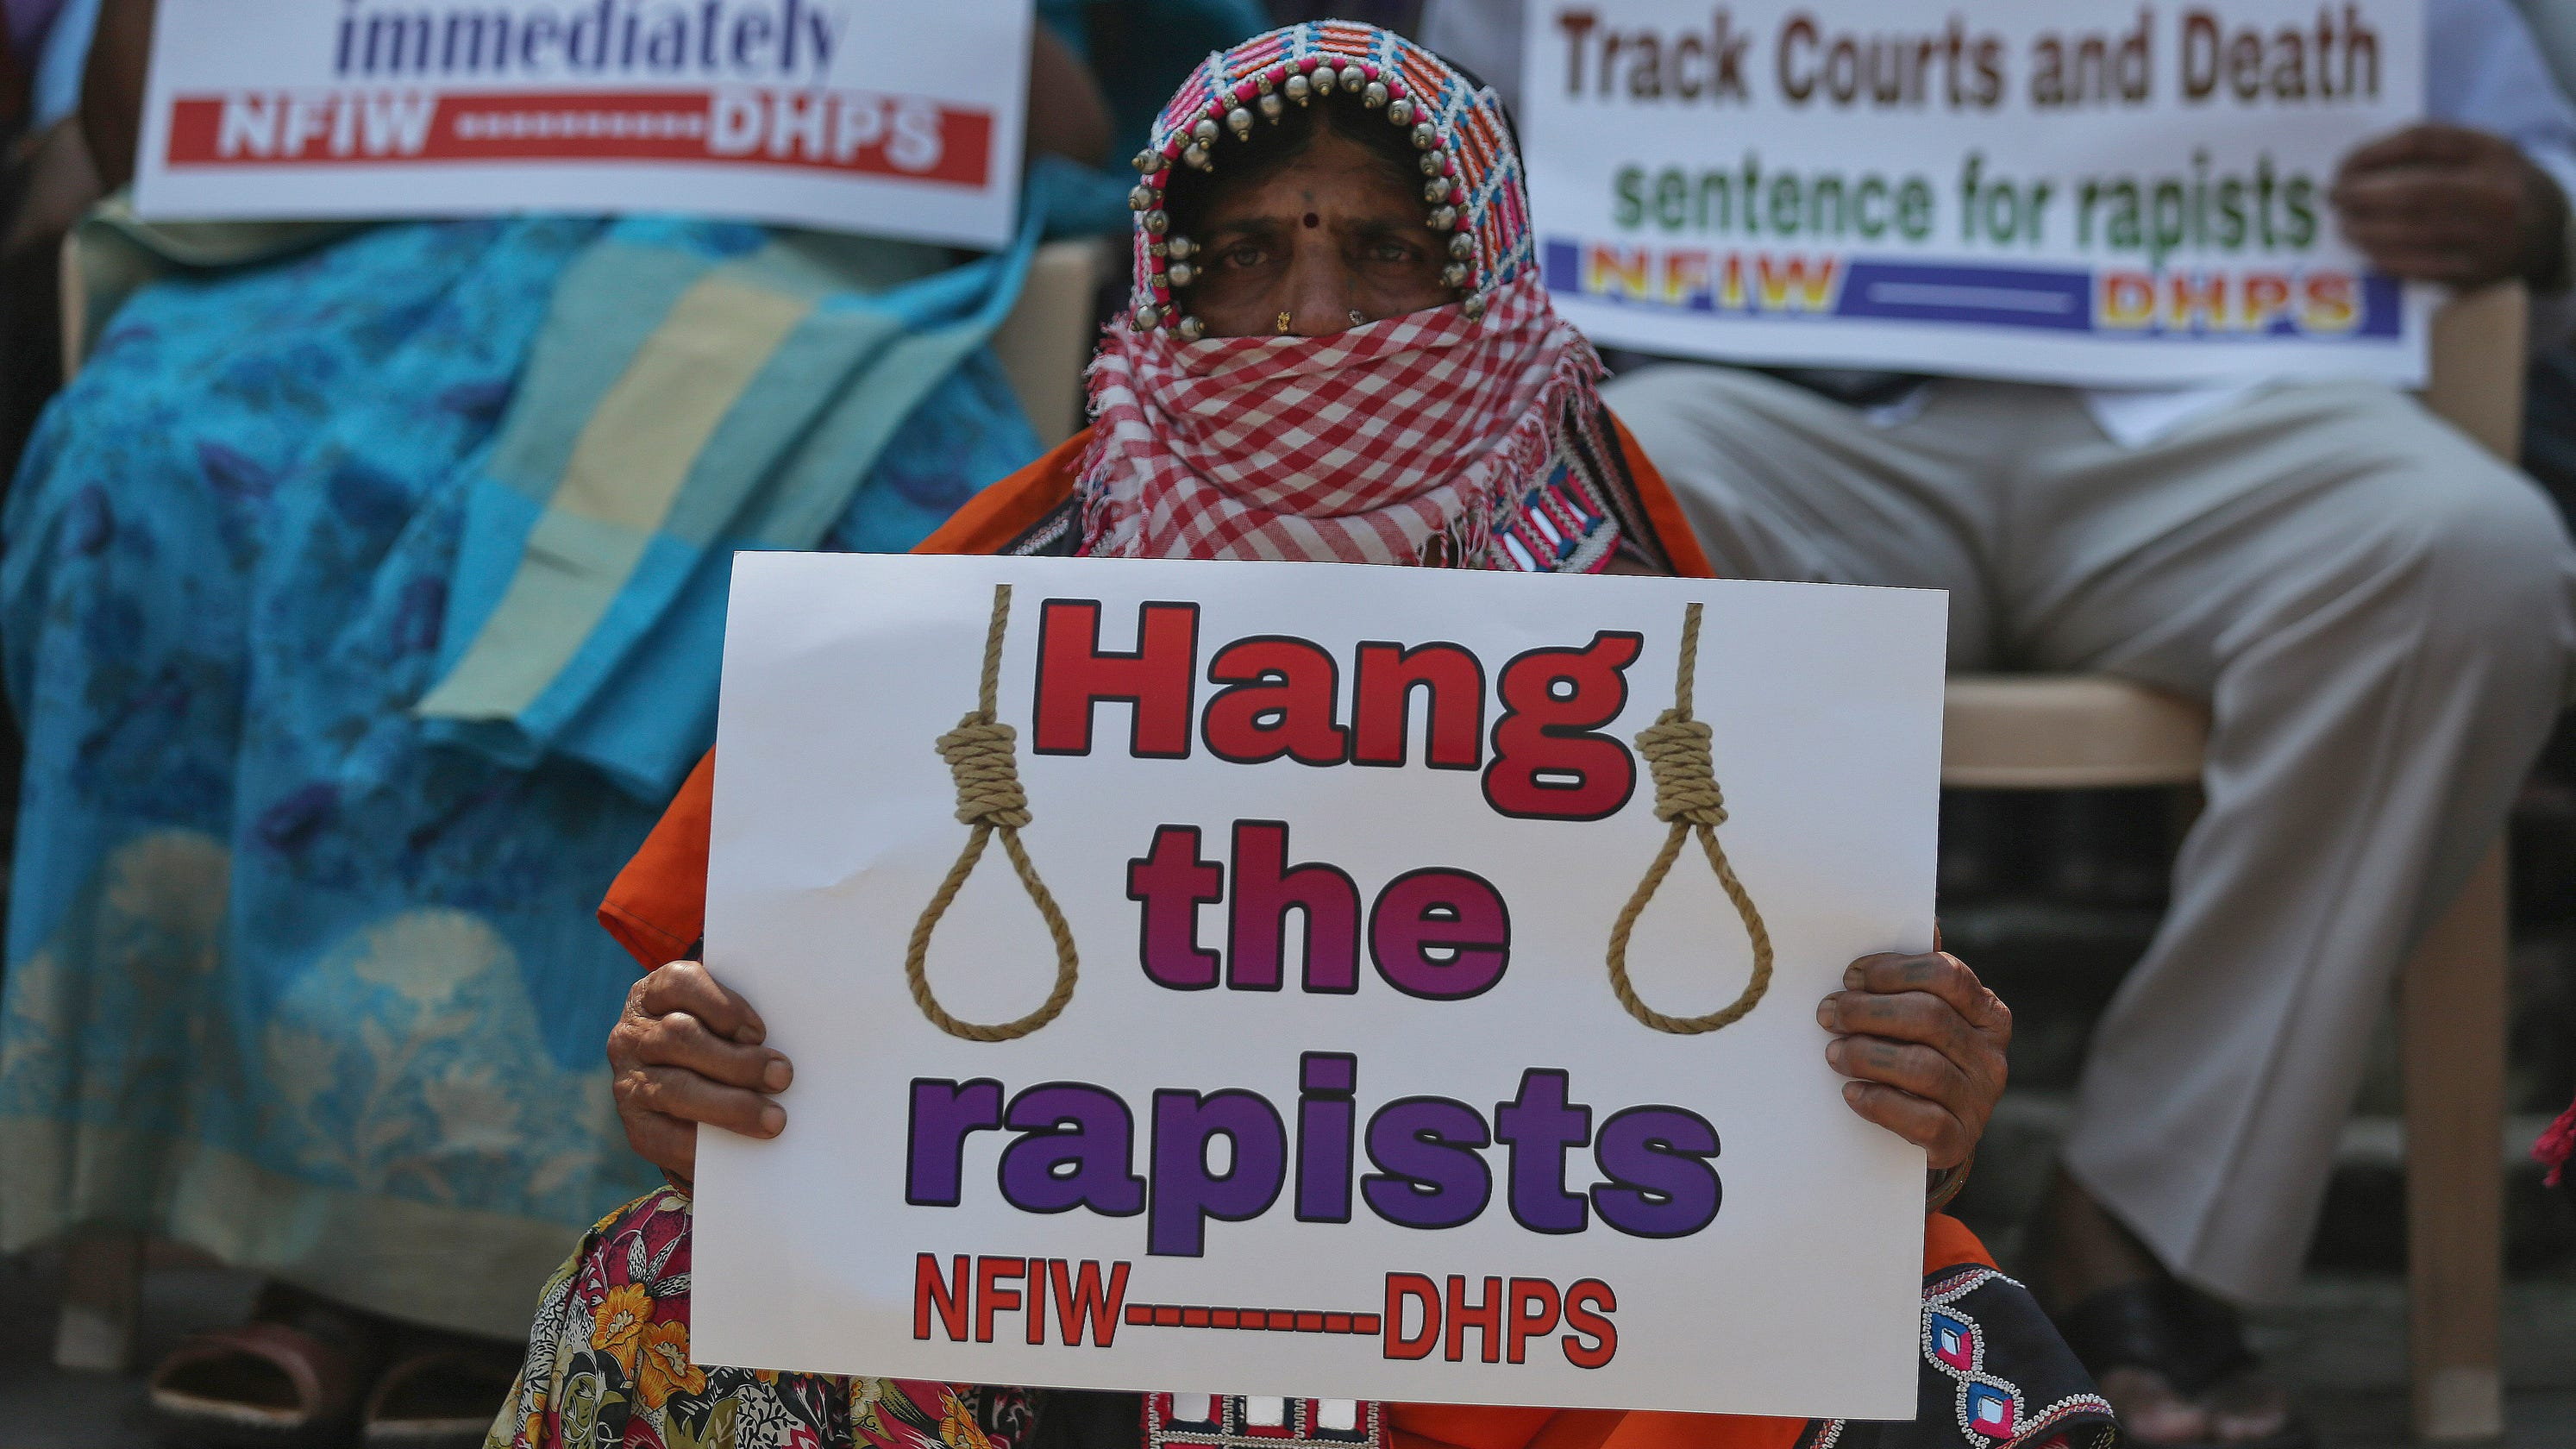 Raped to death: 4 upper caste men arrested in alleged gang rape of Dalit woman in India – USA TODAY